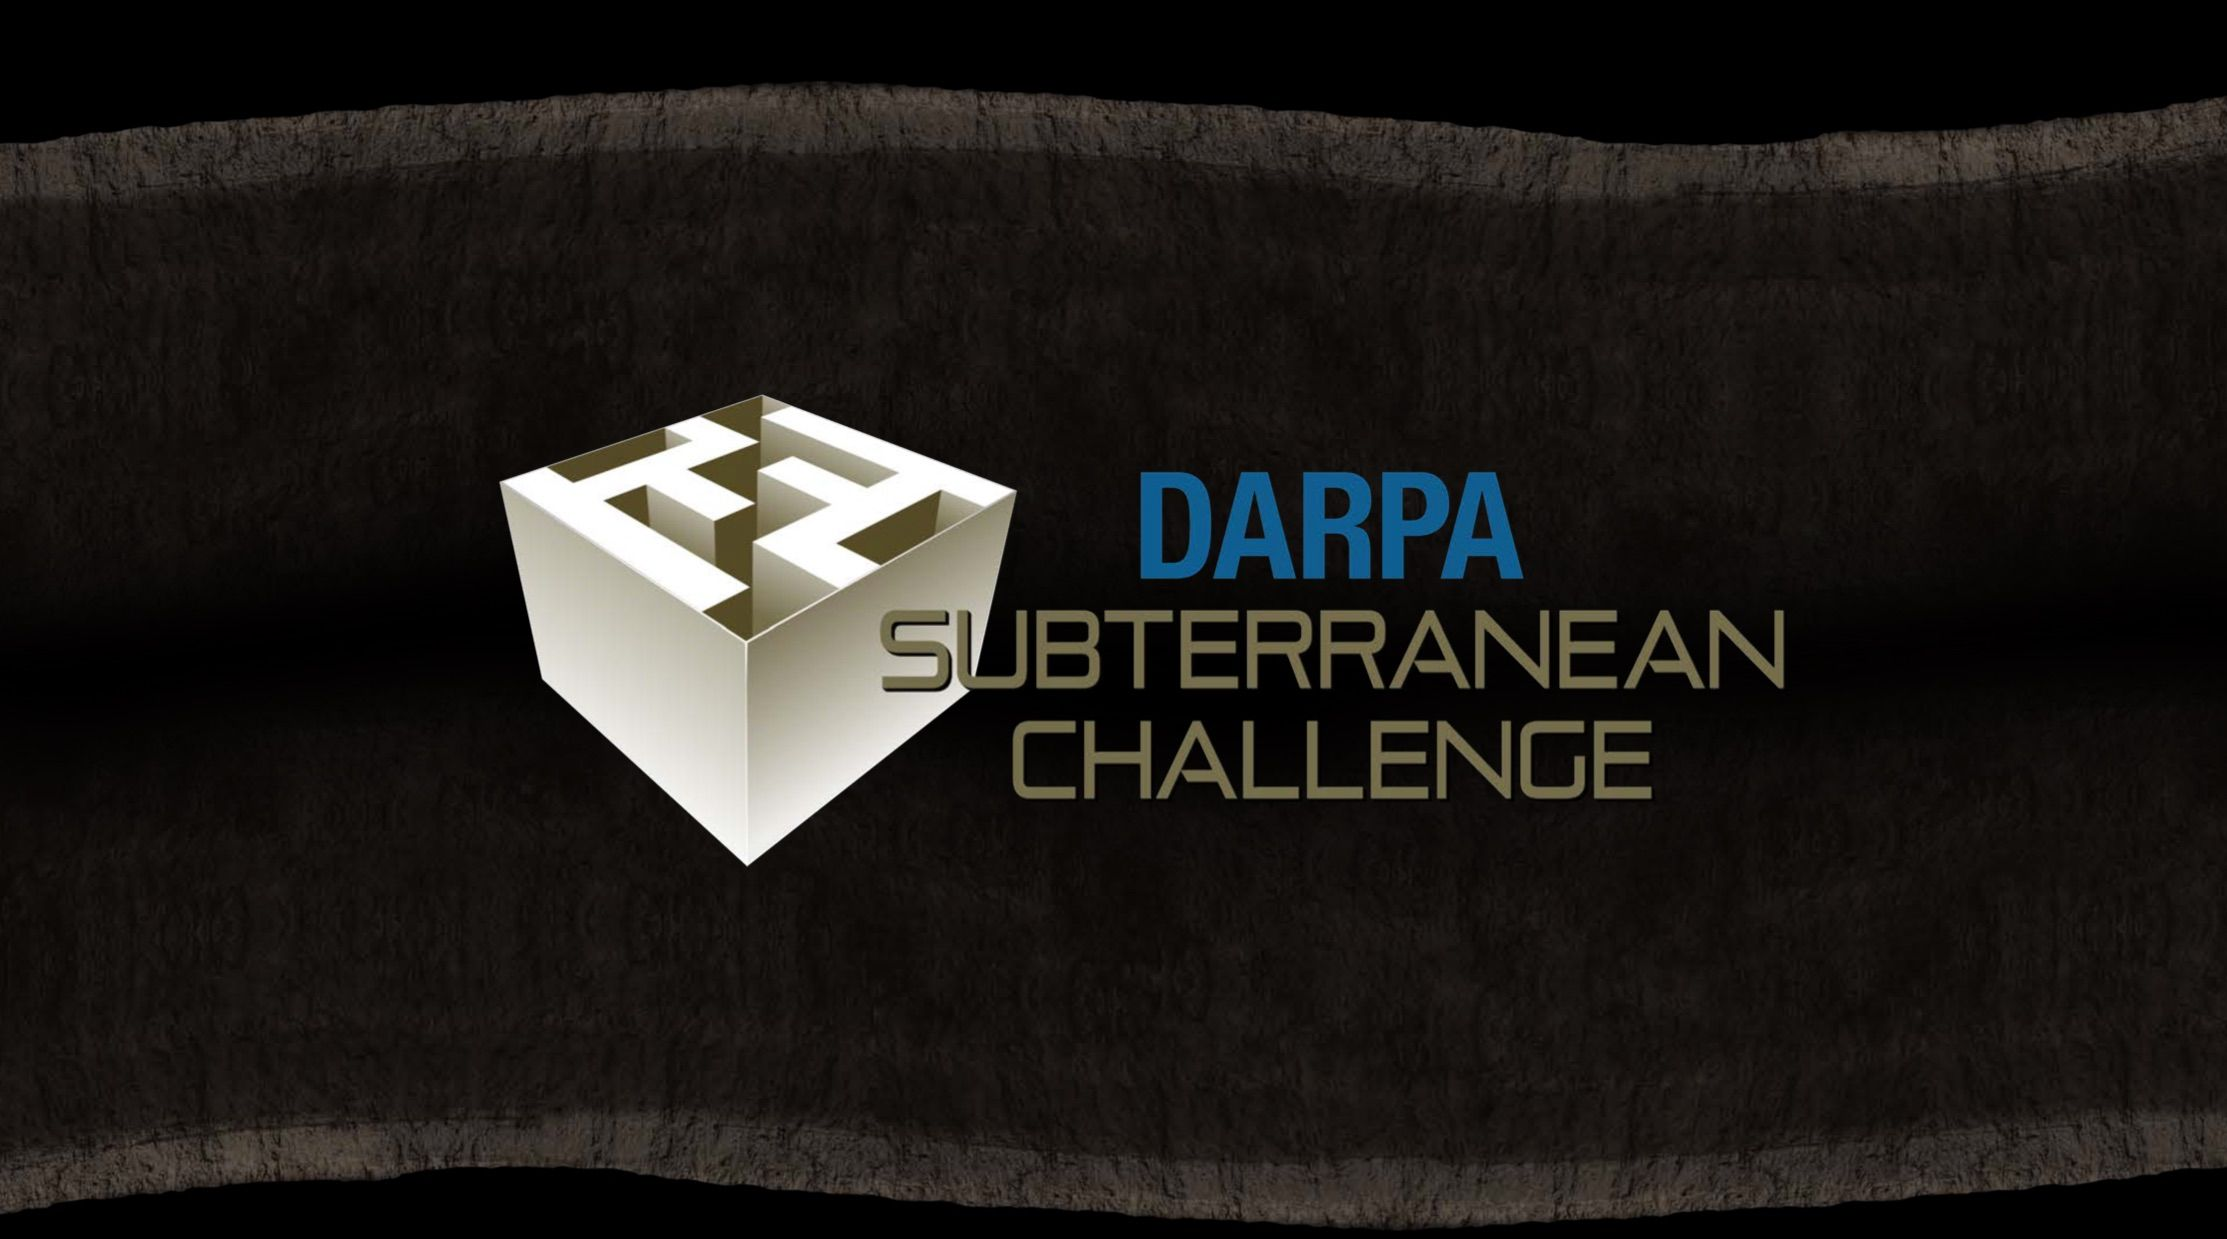 DARPA Subterranean Challenge: Q&A With Program Manager Timothy Chung